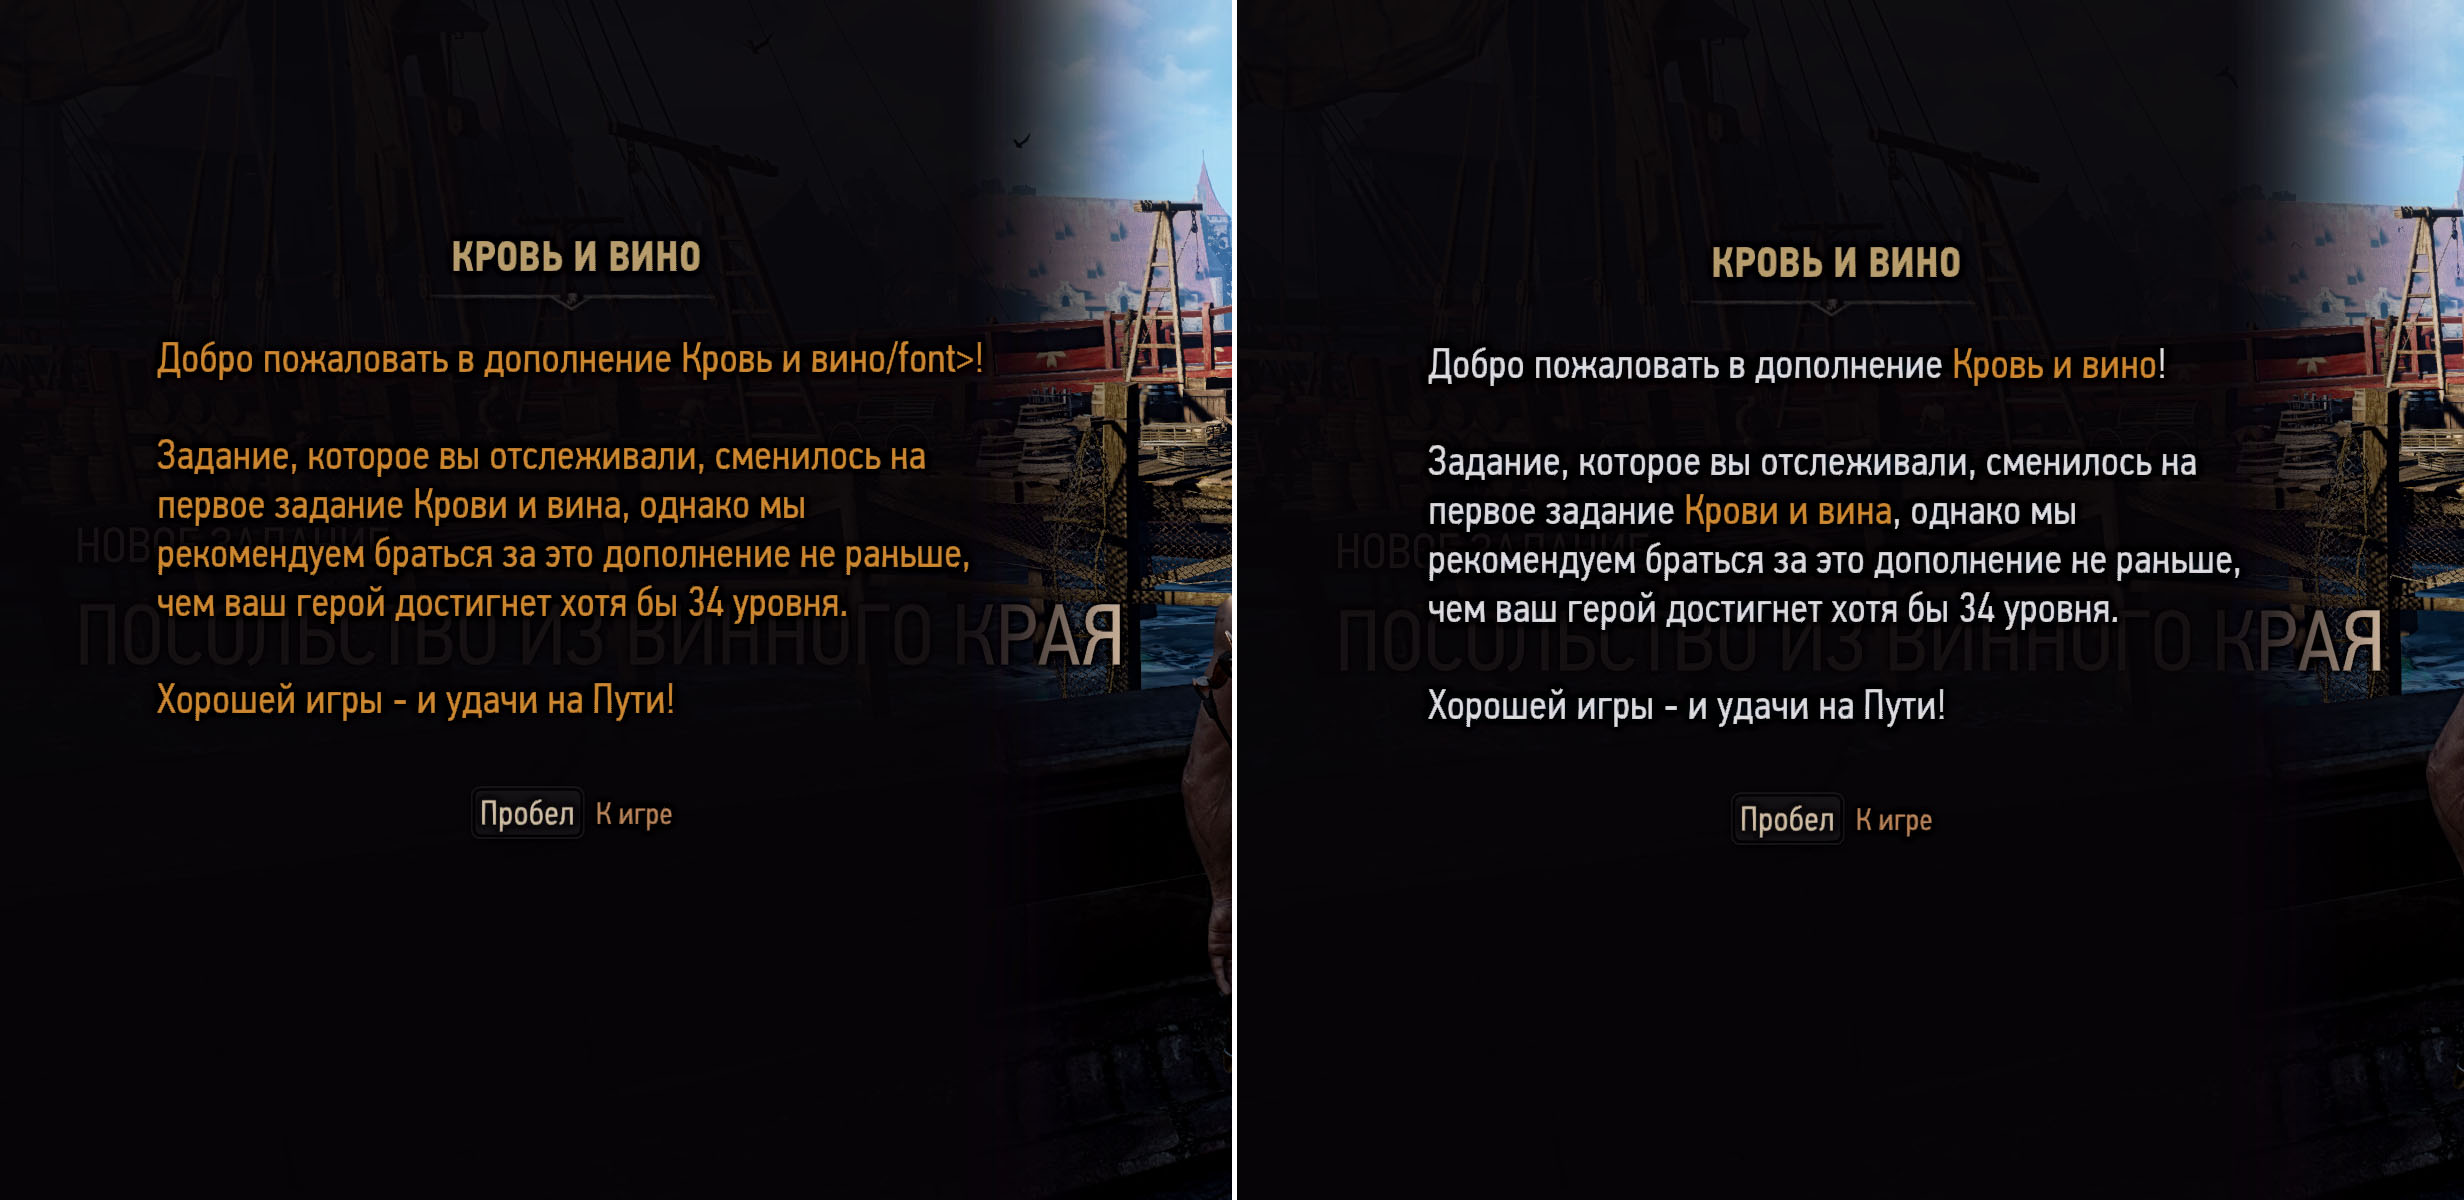 Русская Локализация Fixes для The Witcher 3: Wild Hunt - Скриншот 1